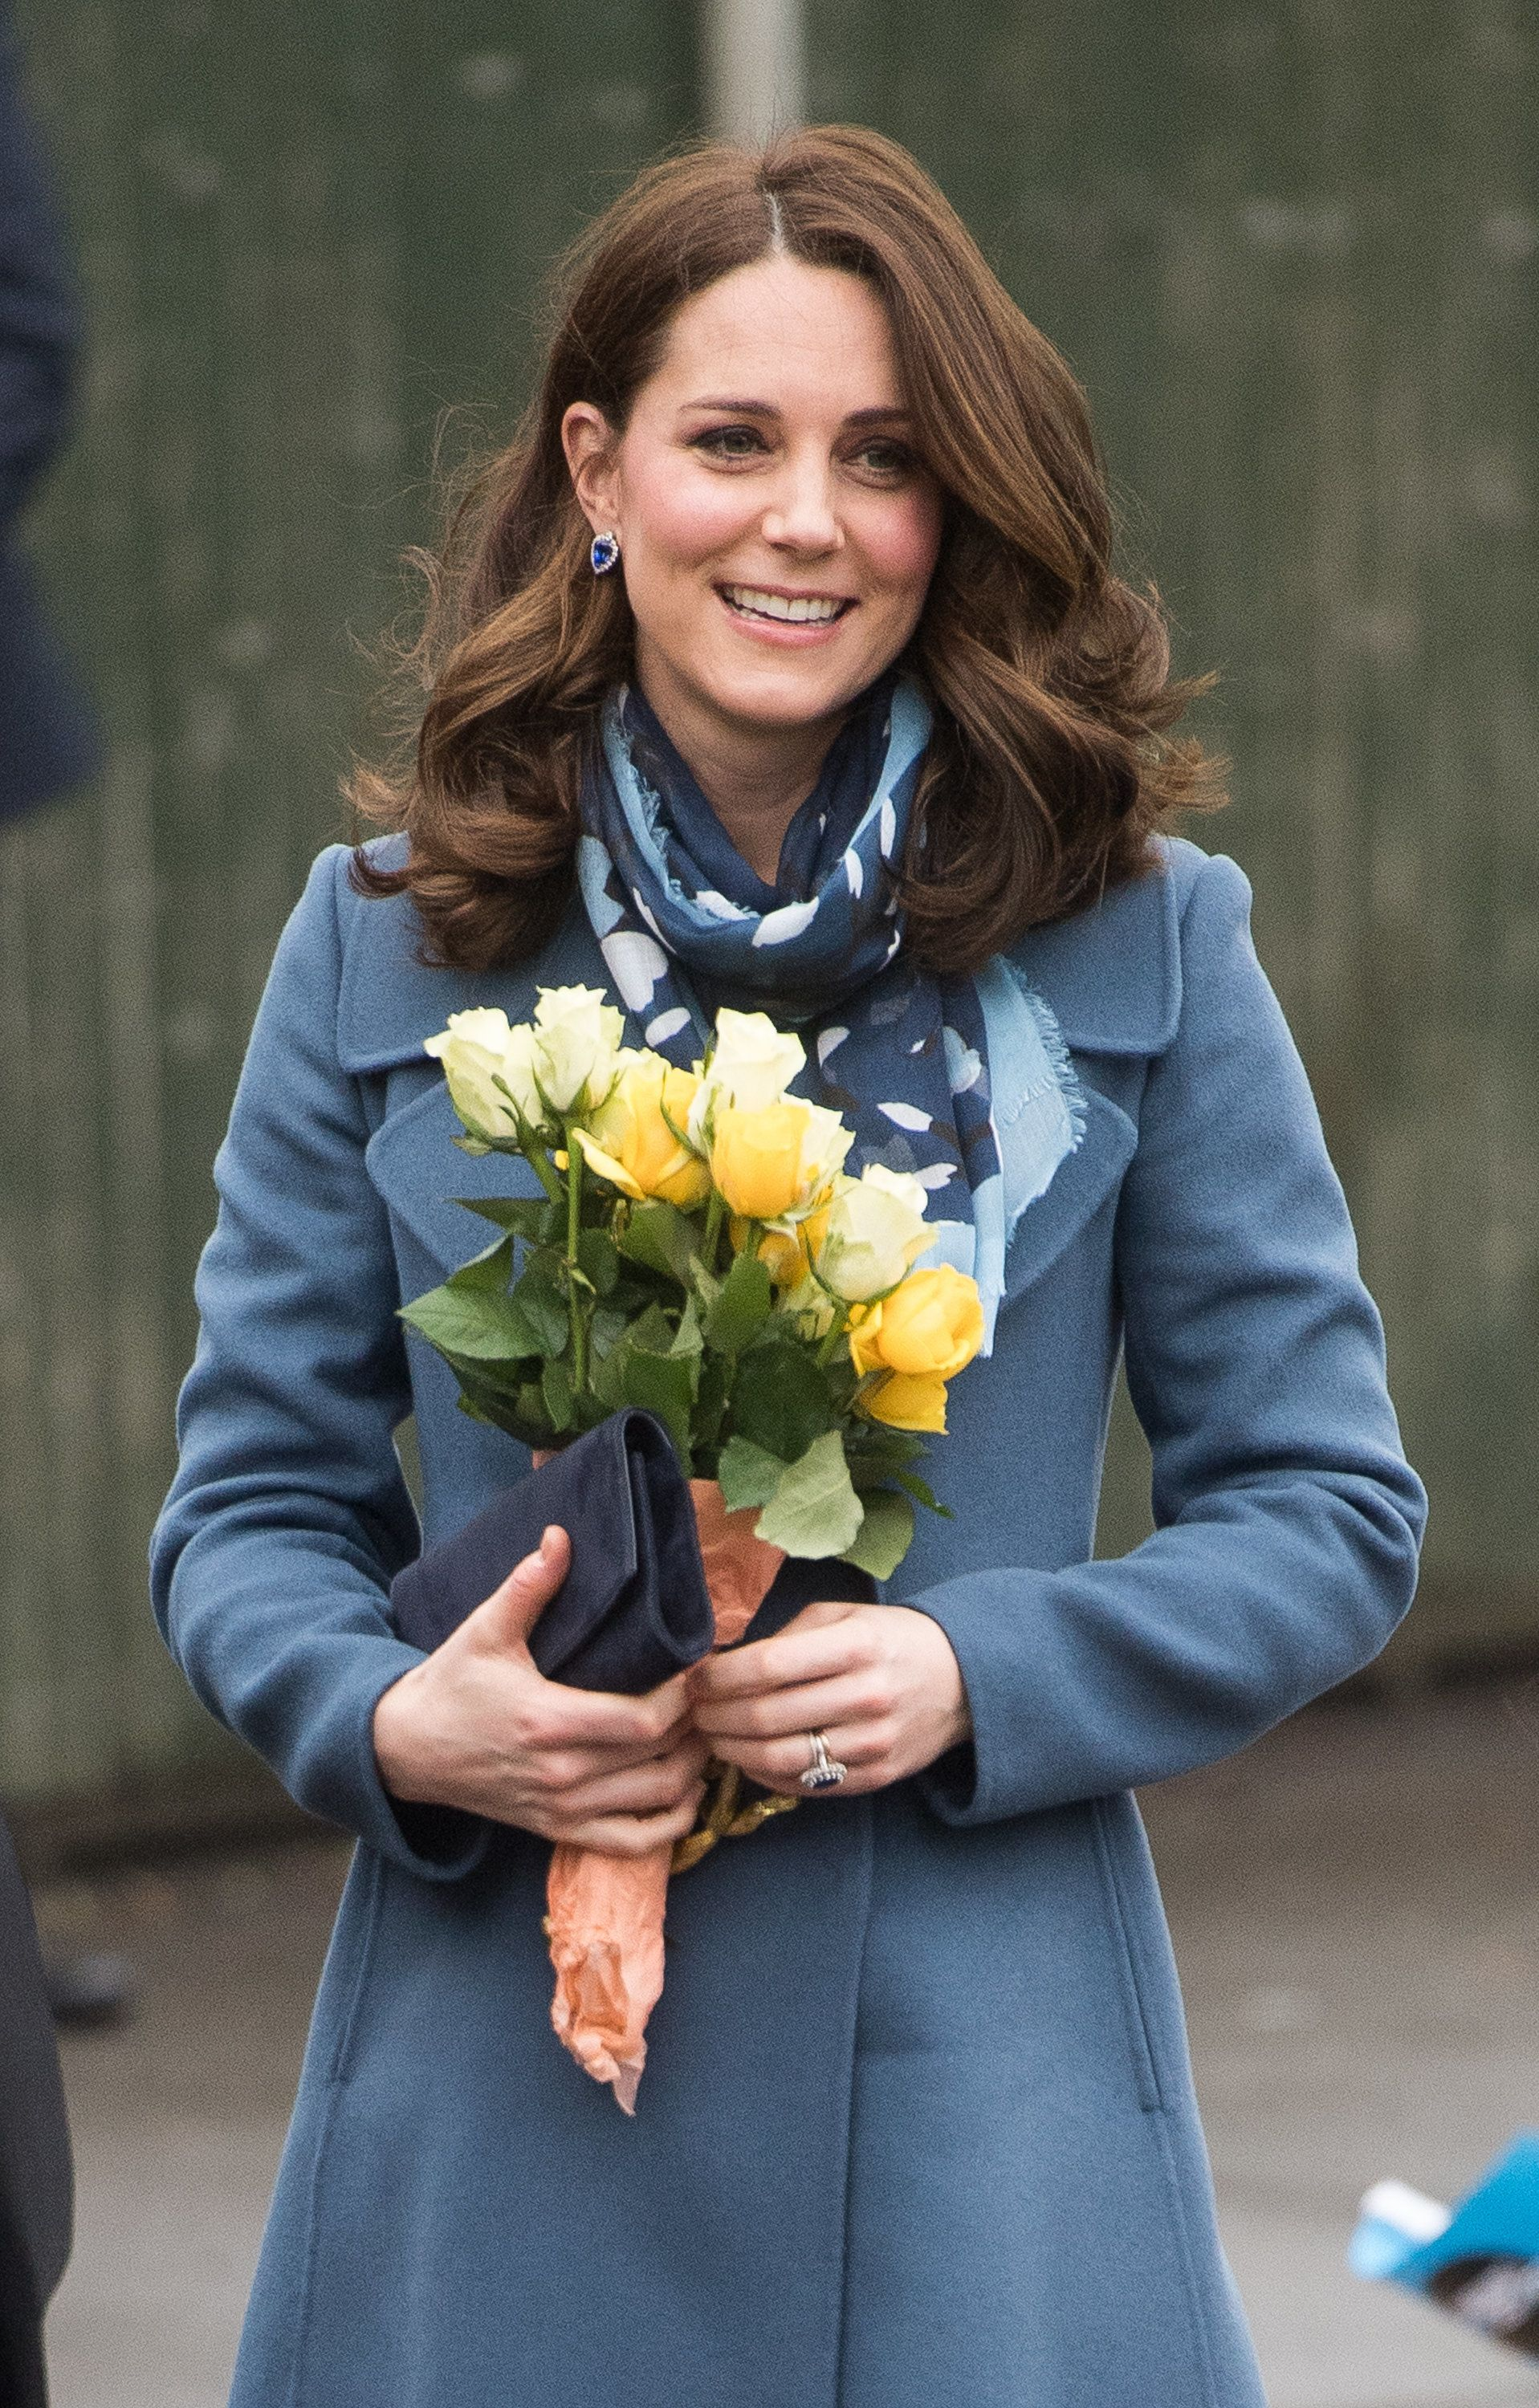 Duchess Of Cambridge Launches 'Mentally Healthy Schools' Website To Improve Support For